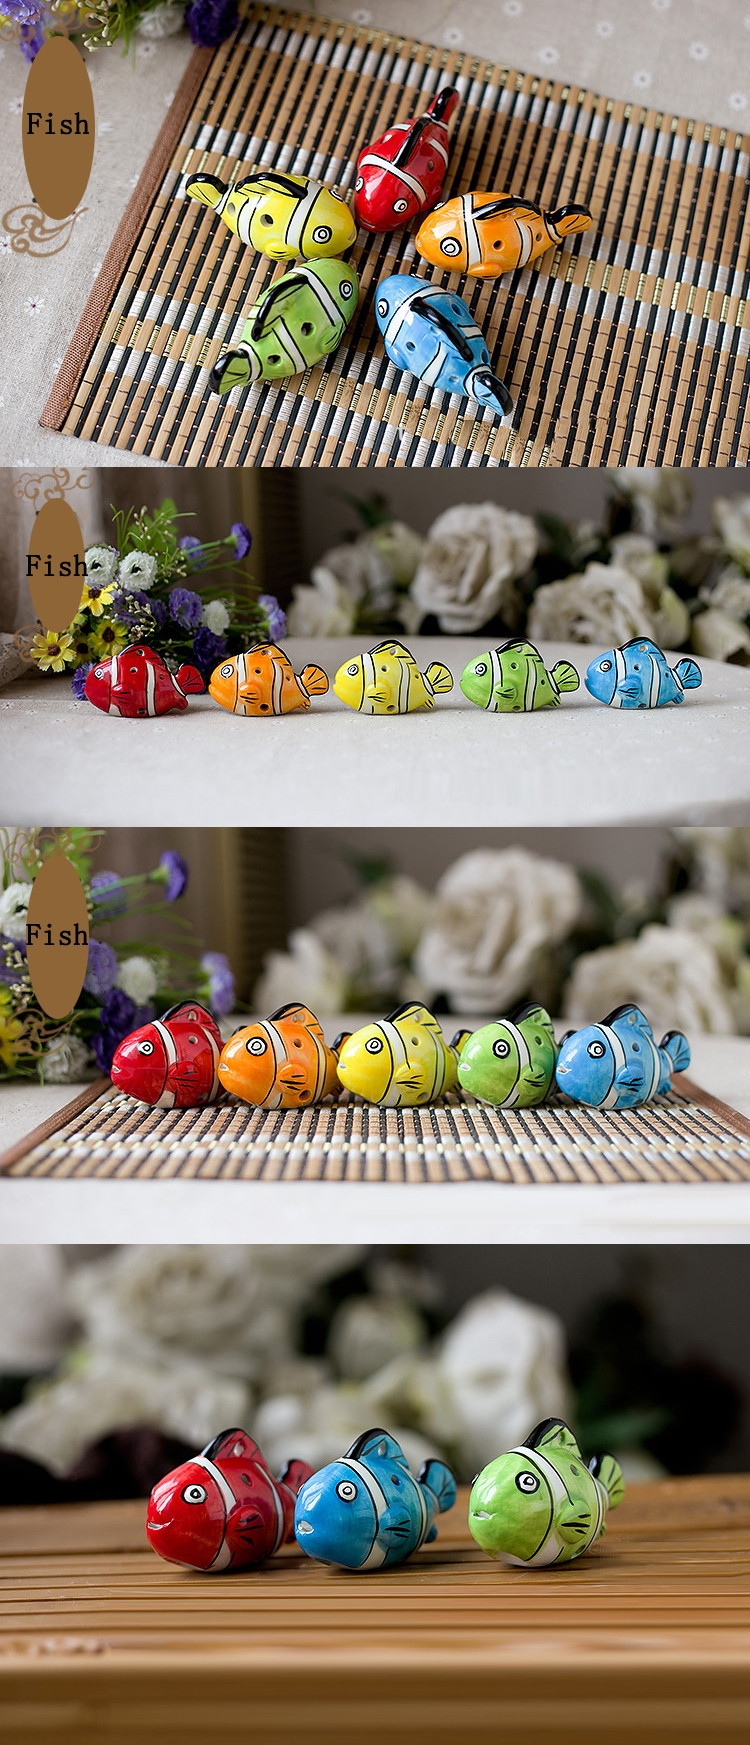 6 Holes Cute Fish Ceramic Ocarina Whistle Decorative Gift